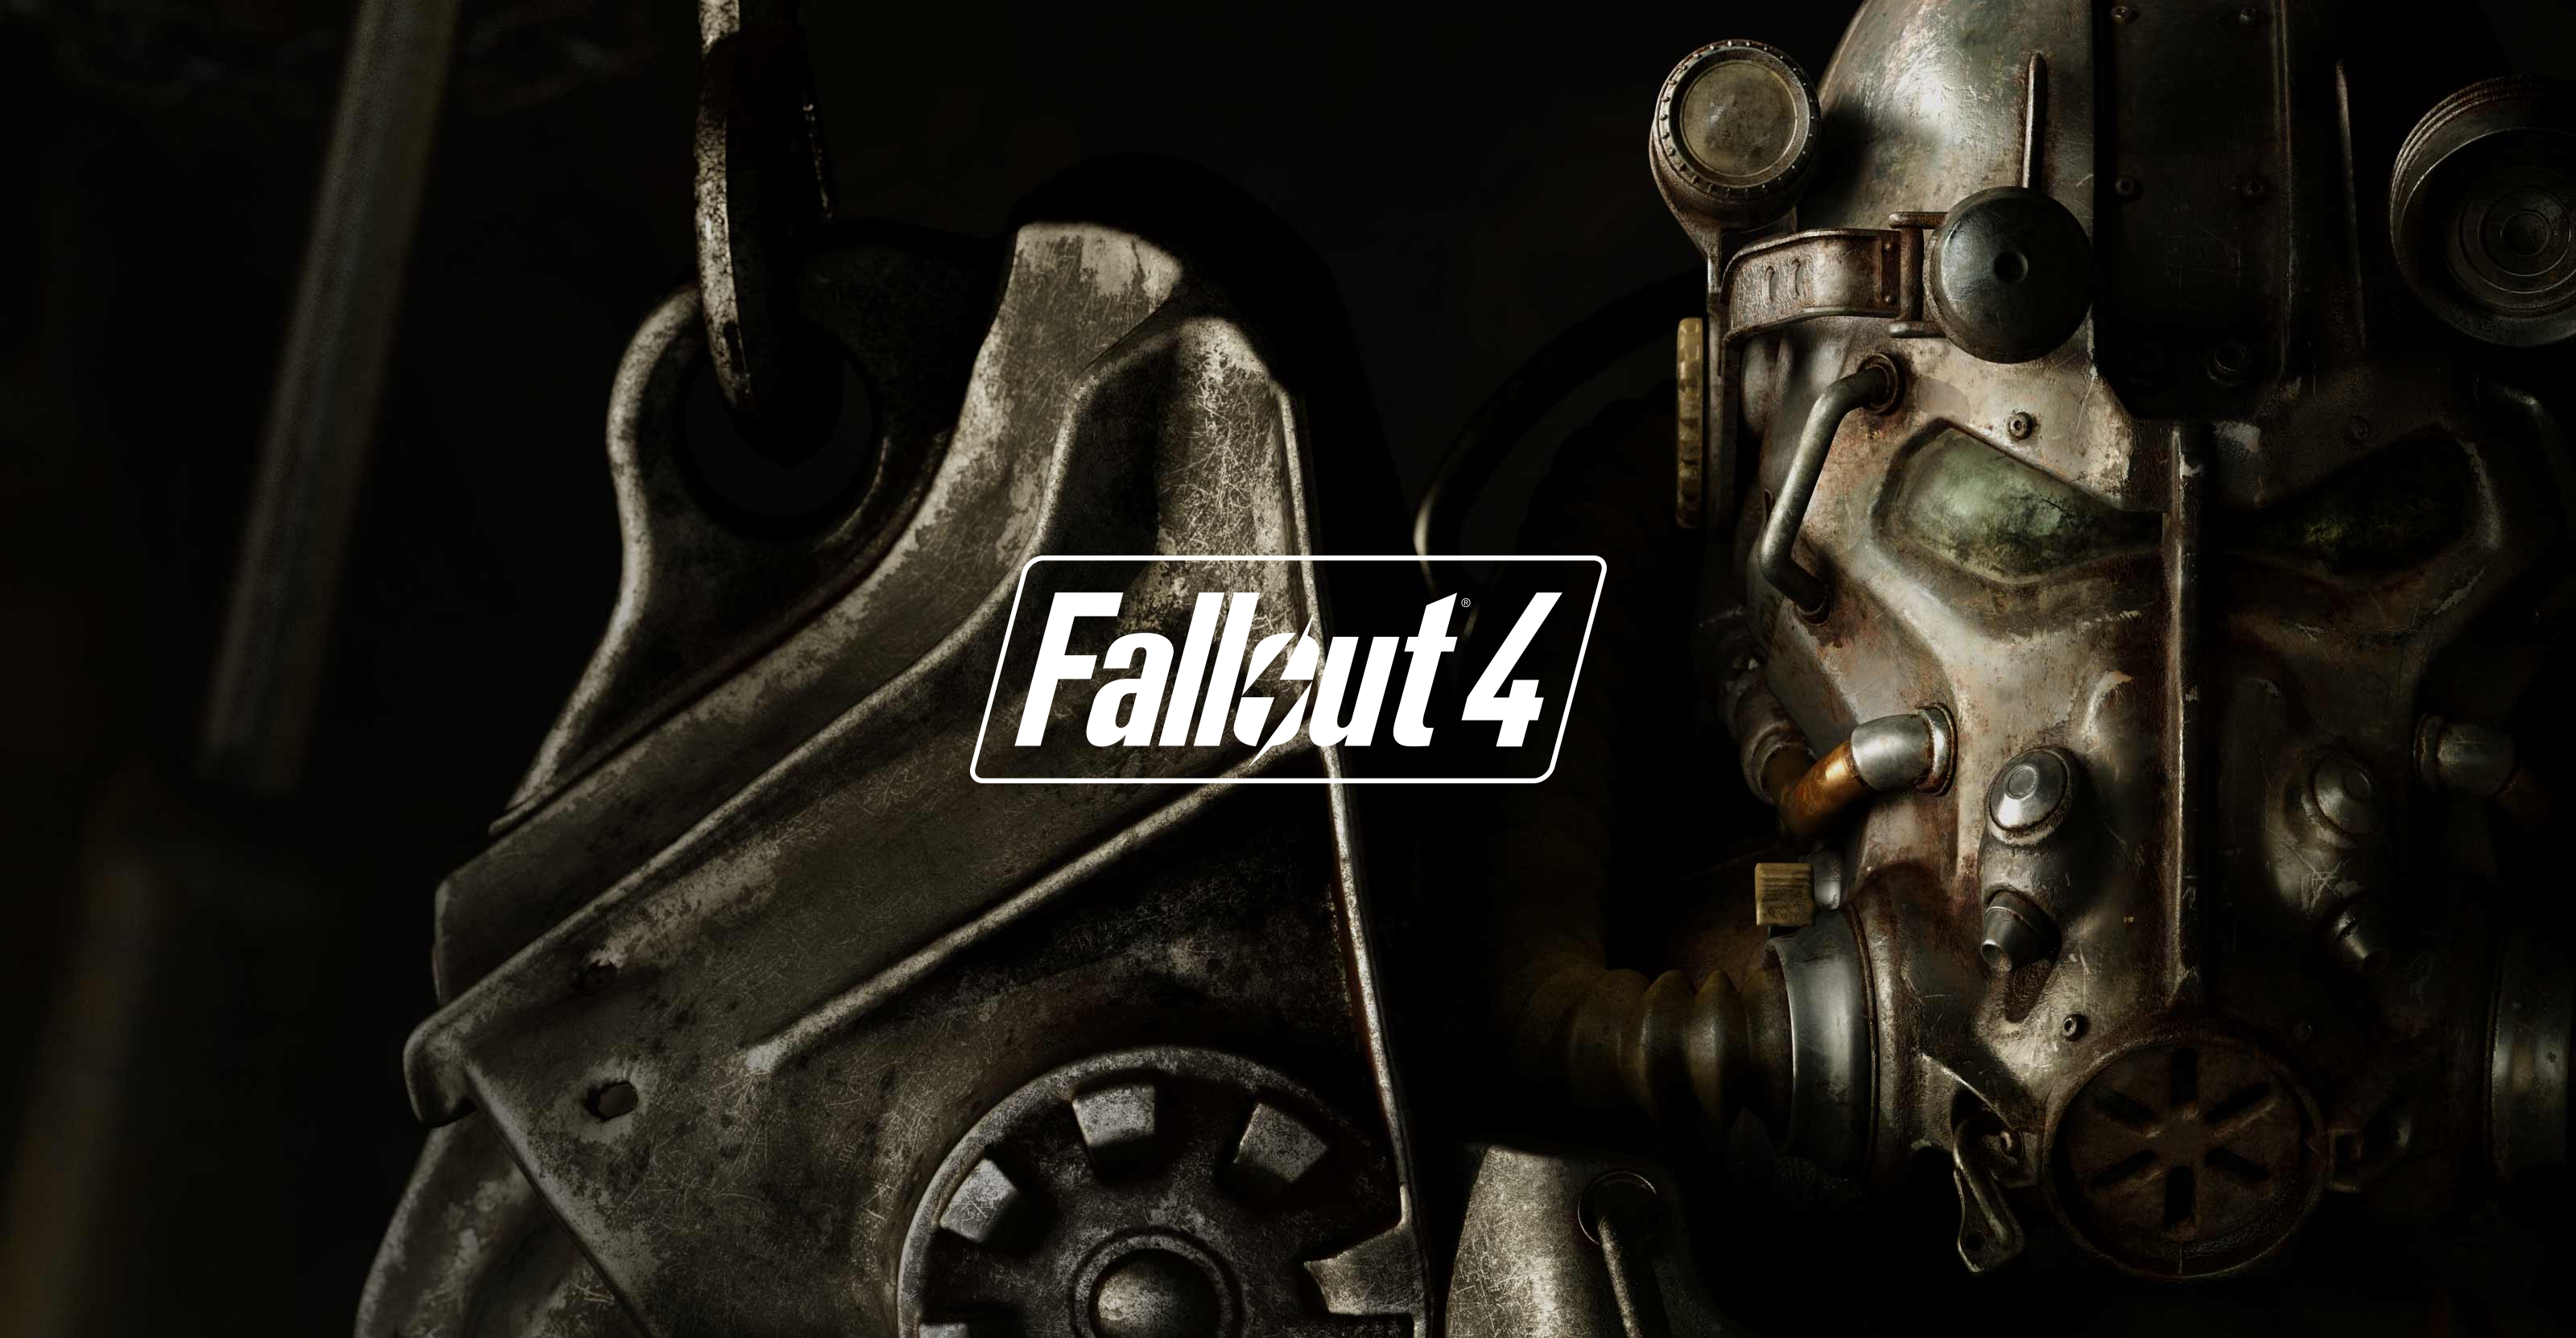 [RPG / FPS] Fallout 4 Fallout-4